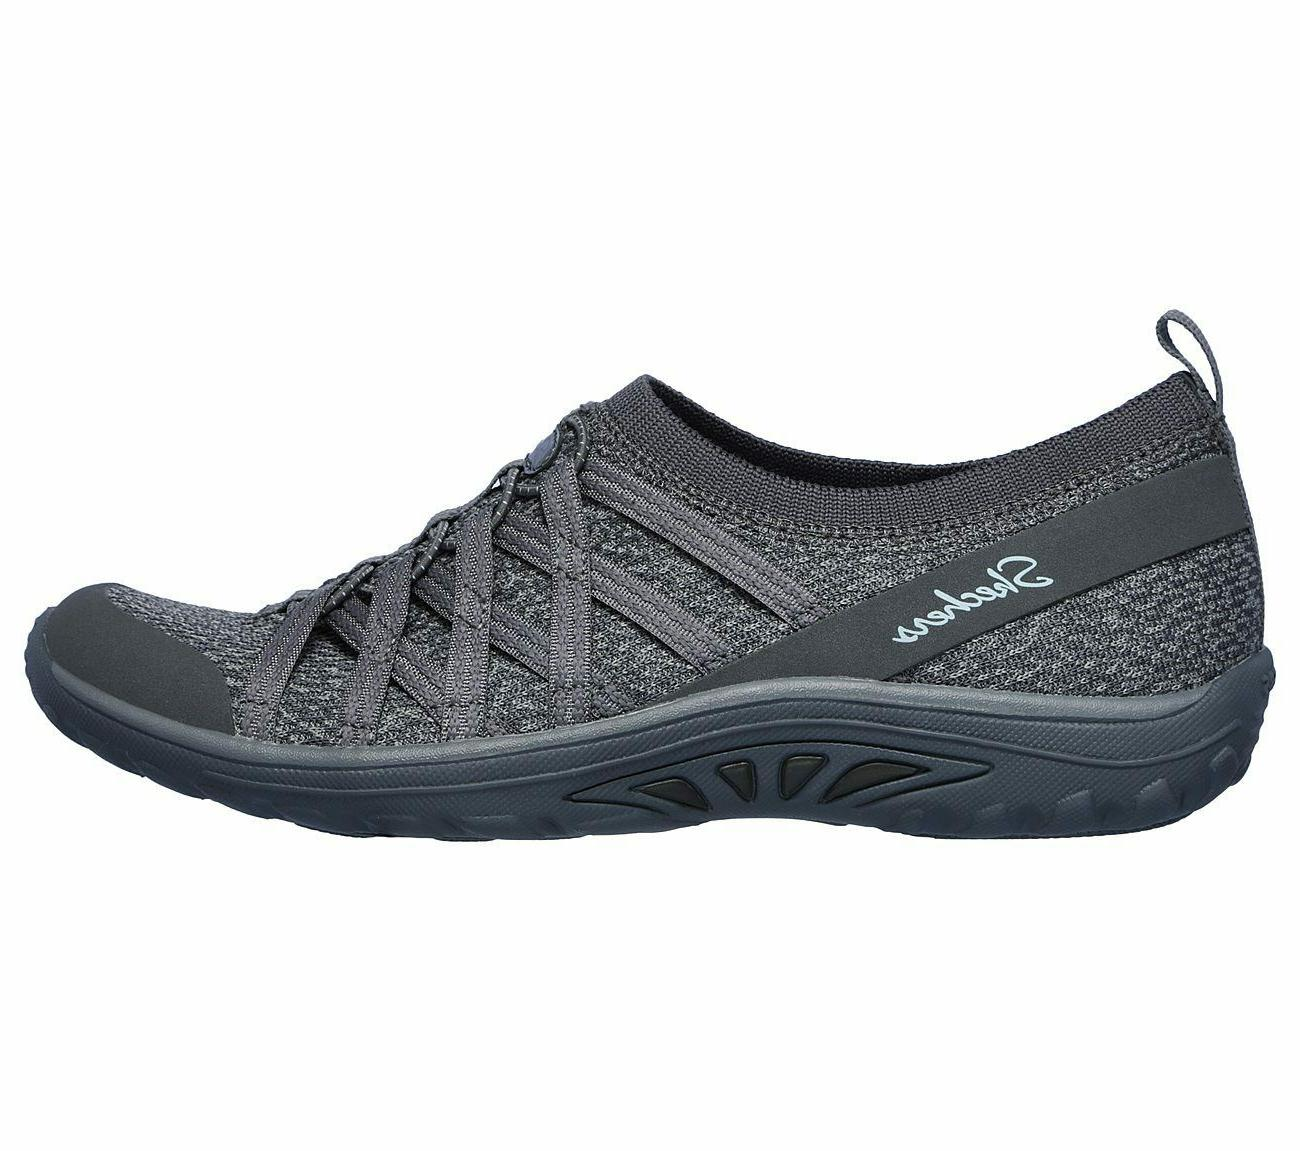 Skechers Charcoal shoes Foam Comfort Sporty